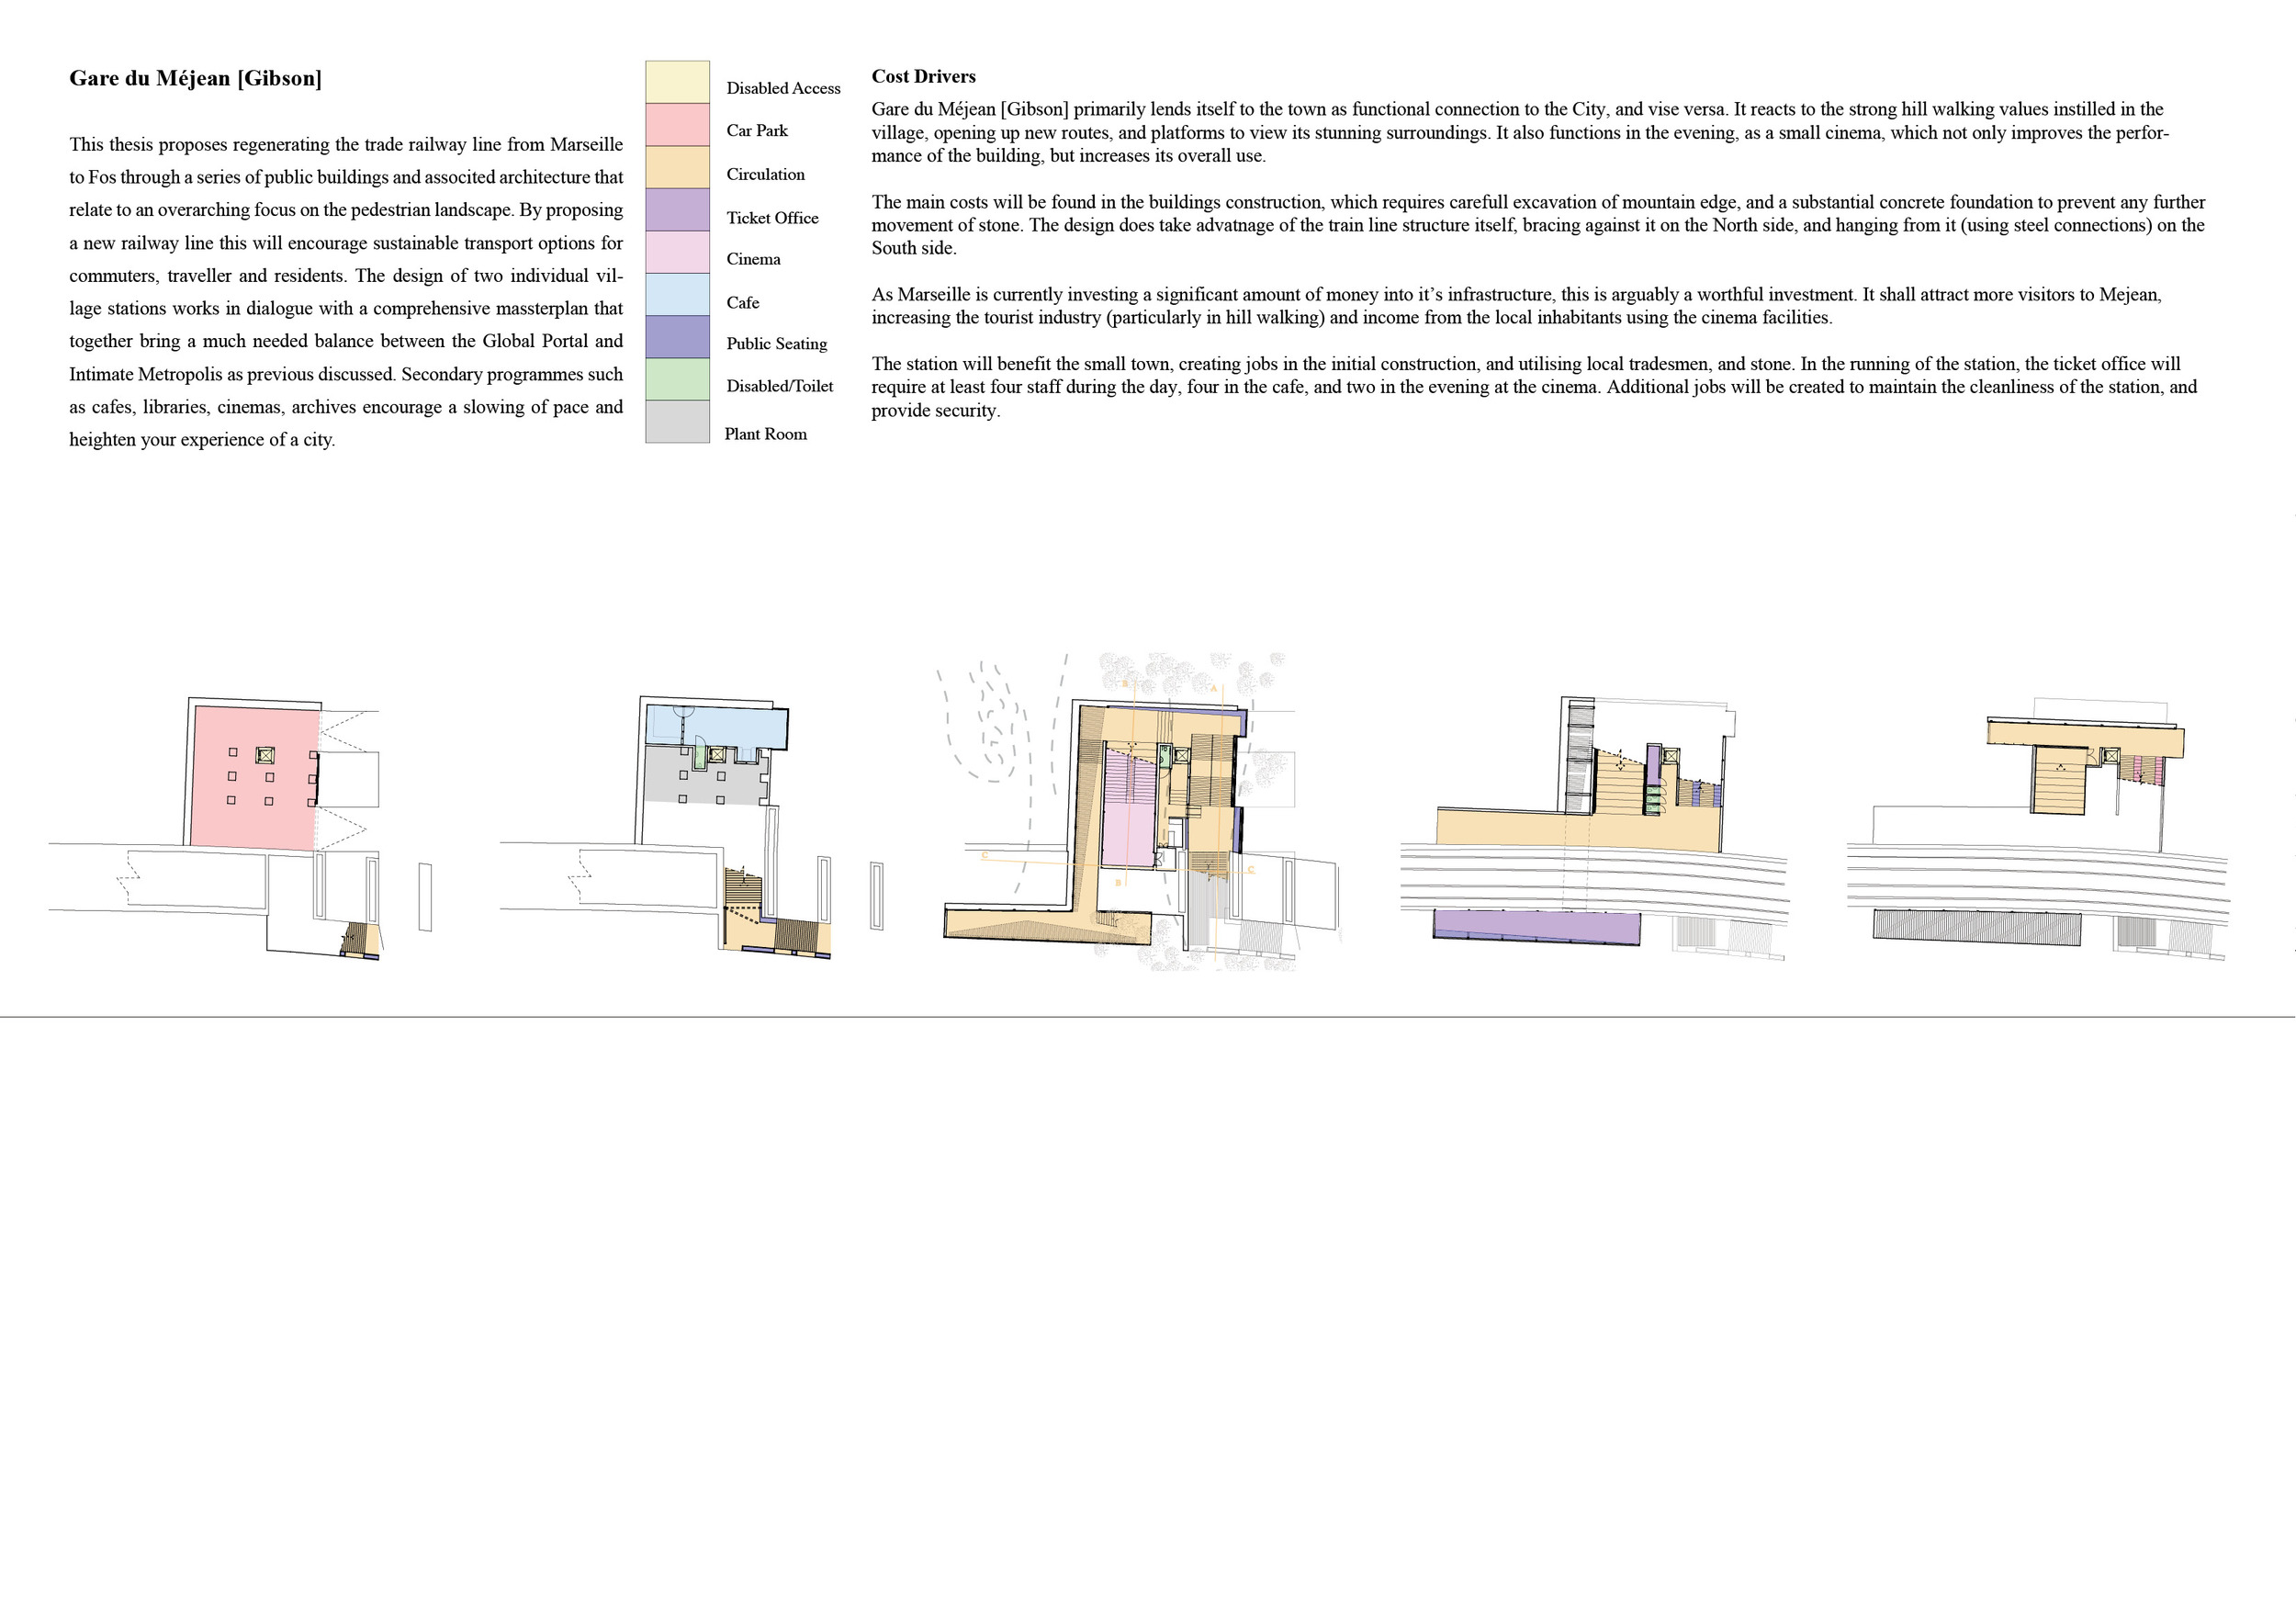 law and management study of proposed design